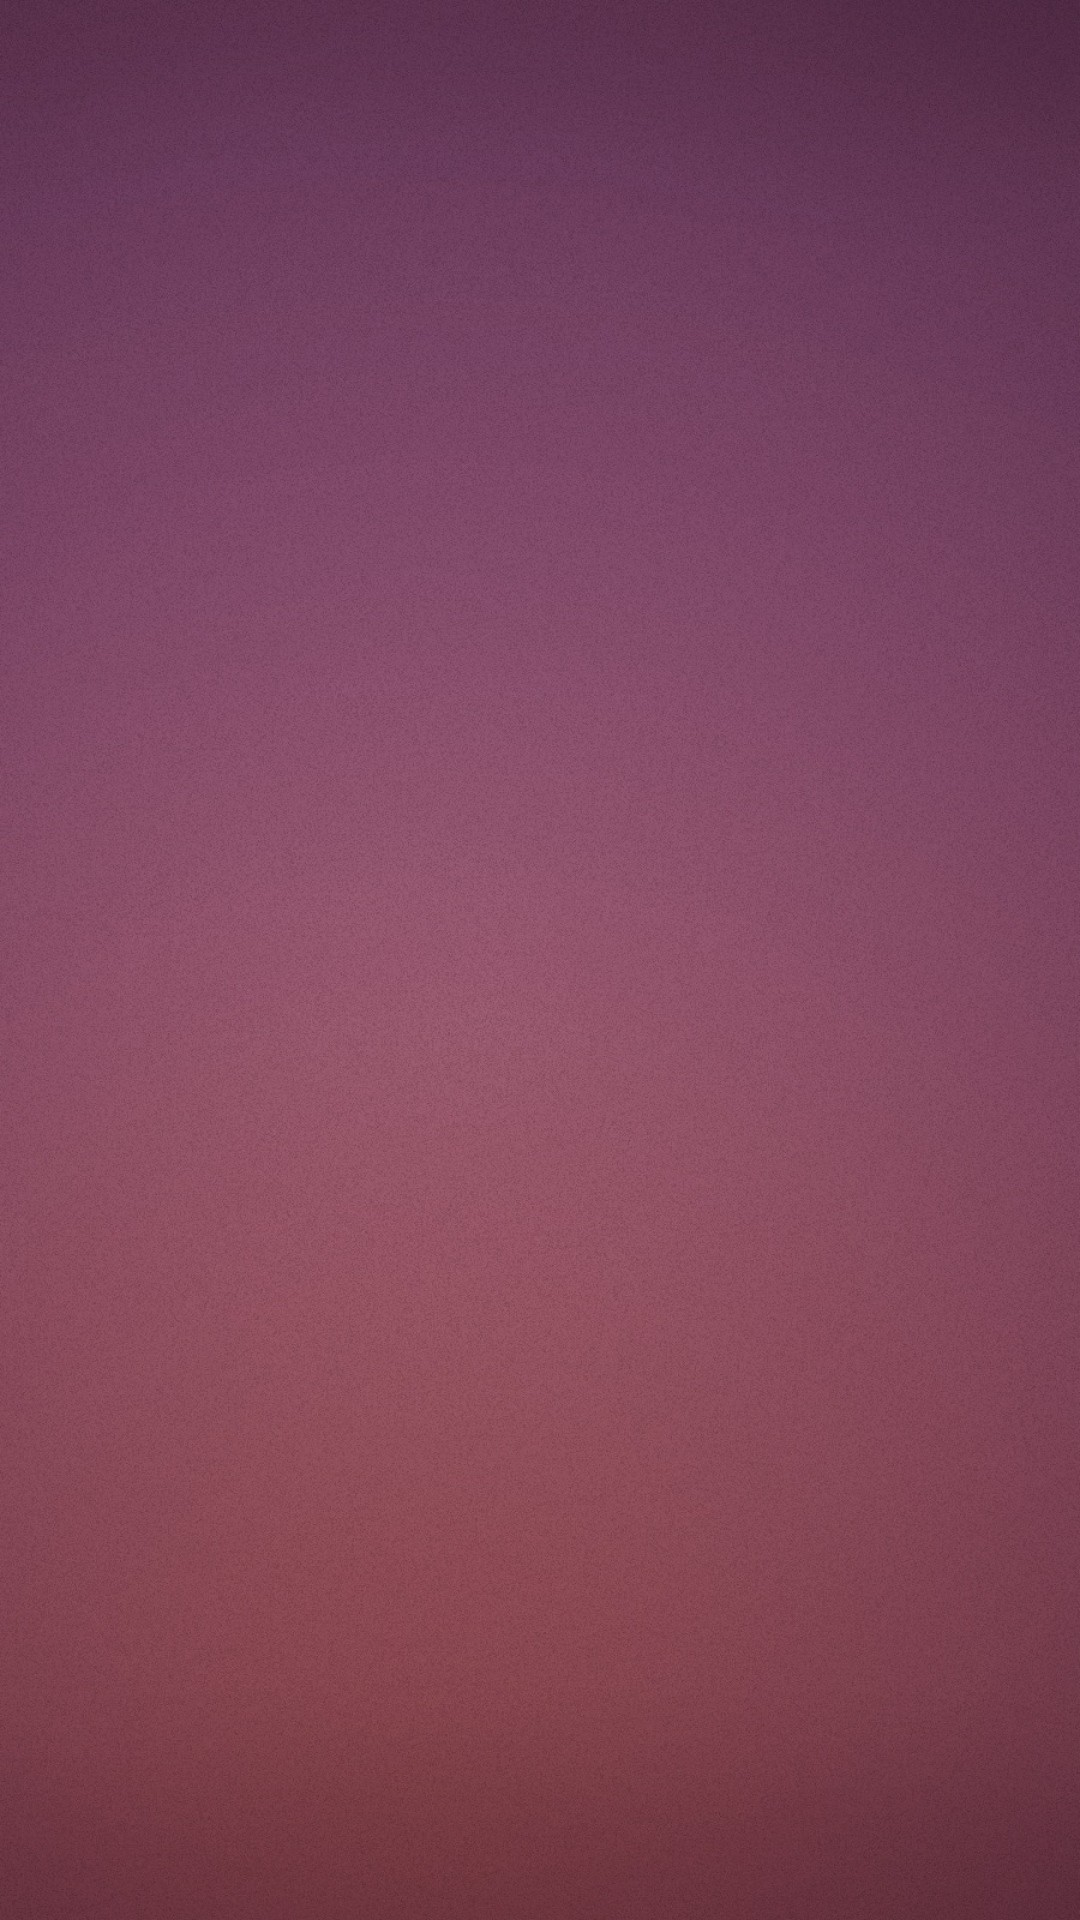 Preview wallpaper background, light, solid, bright 1080×1920